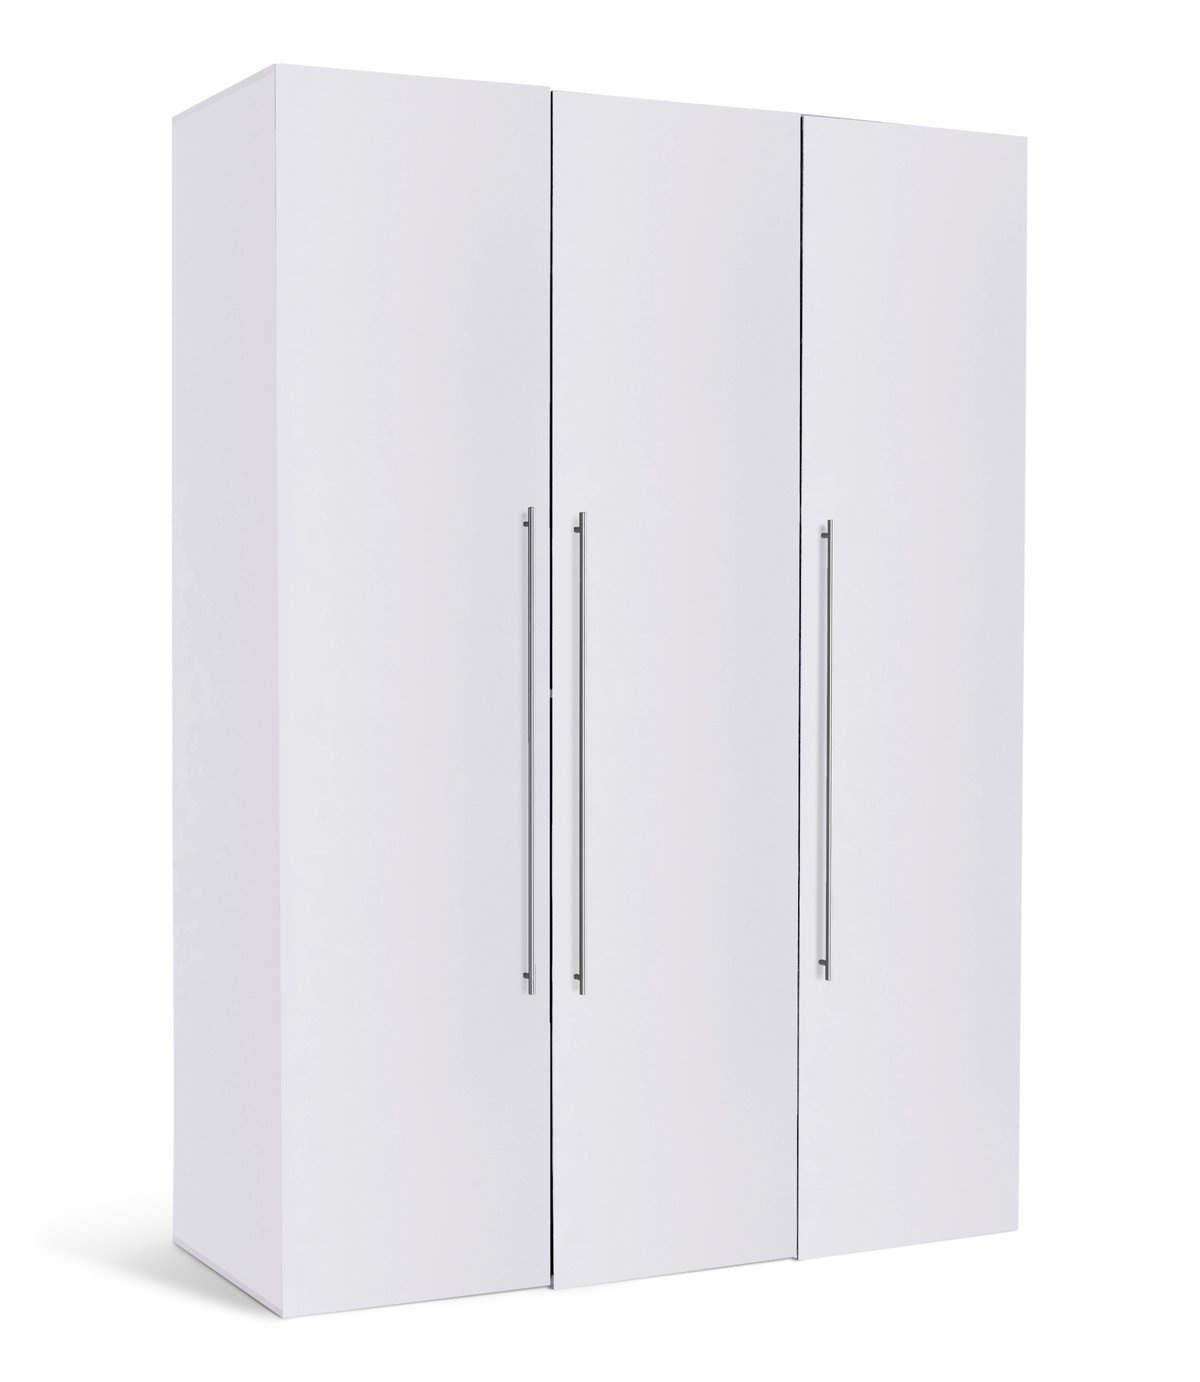 Argos Home Atlas 3 Door Tall Wardrobe - White